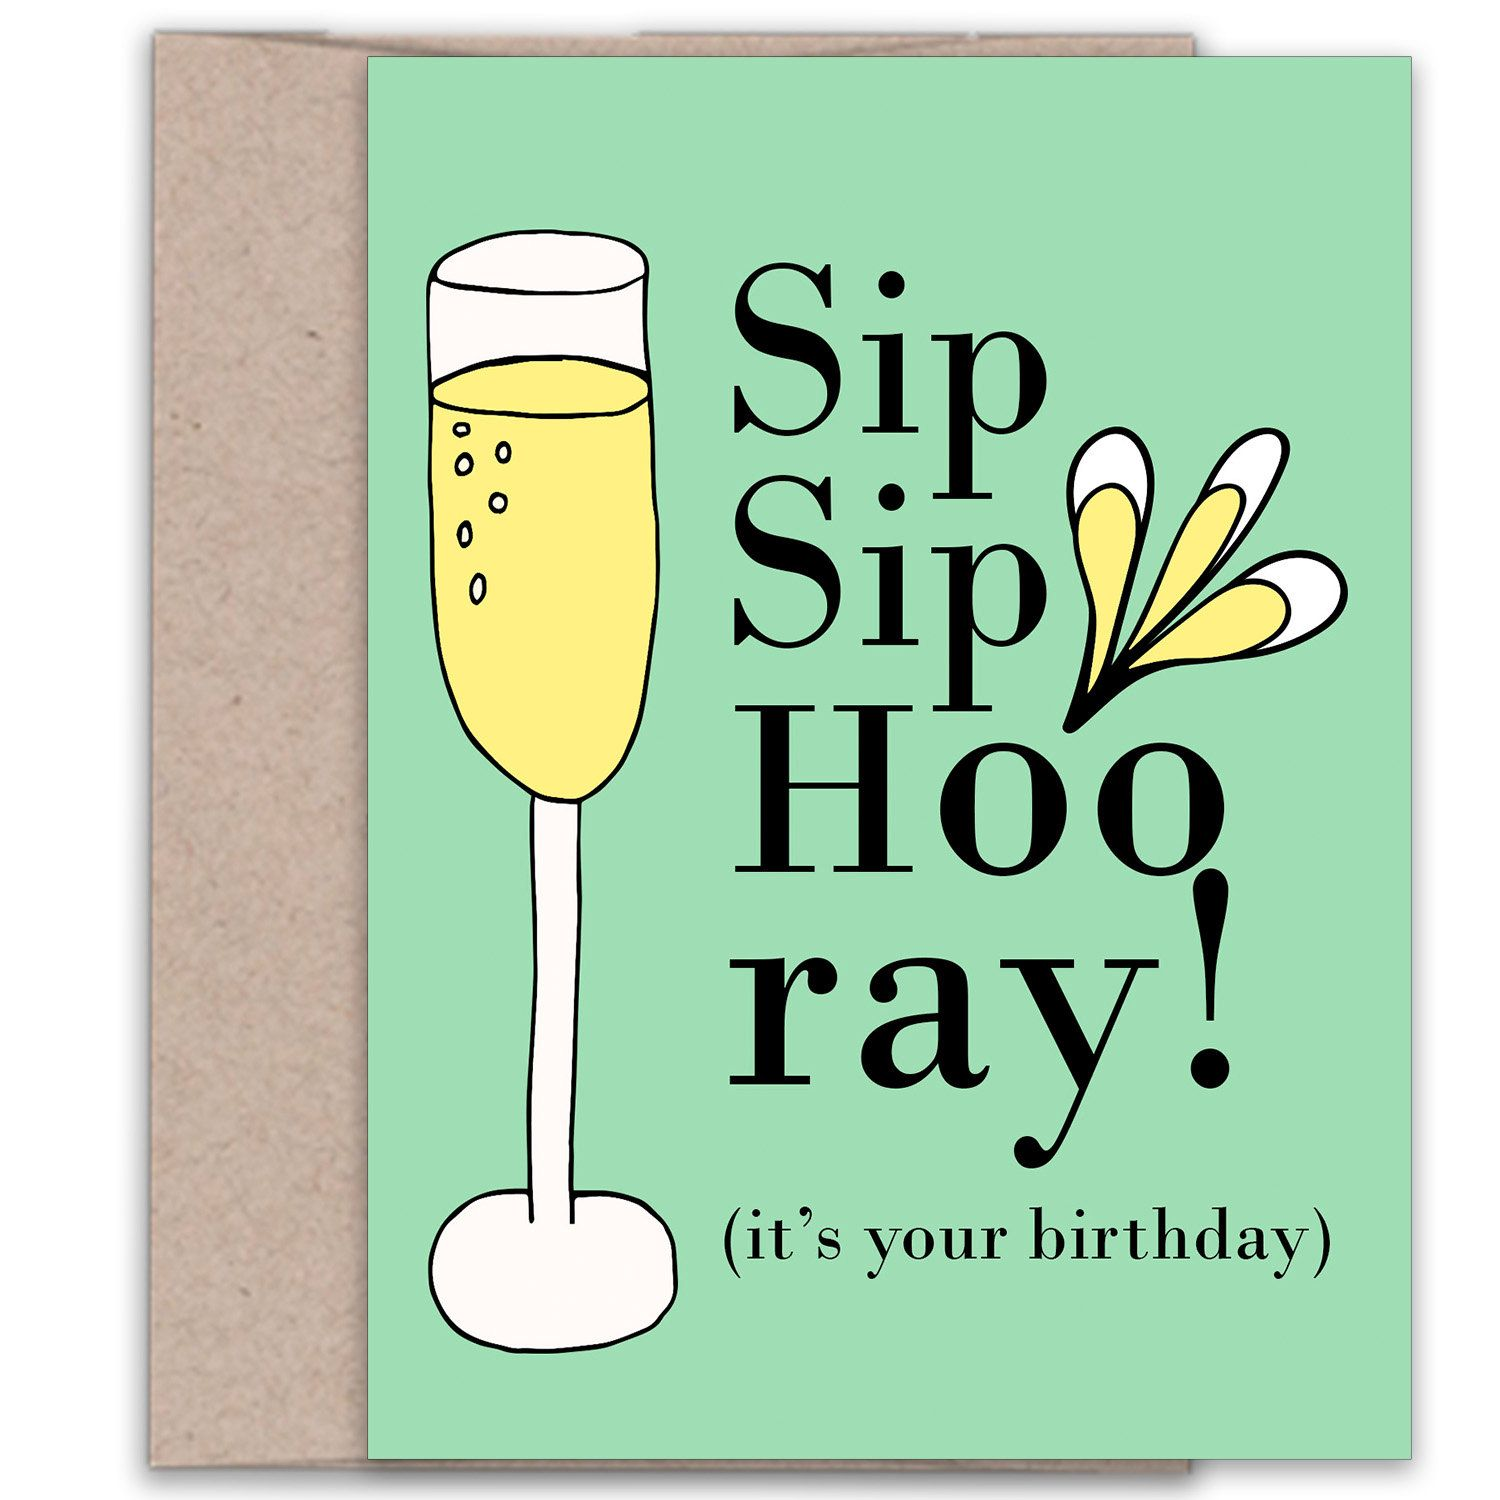 Sip Sip Hooray Funny Birthday Card Funny Greetings Funny Cards